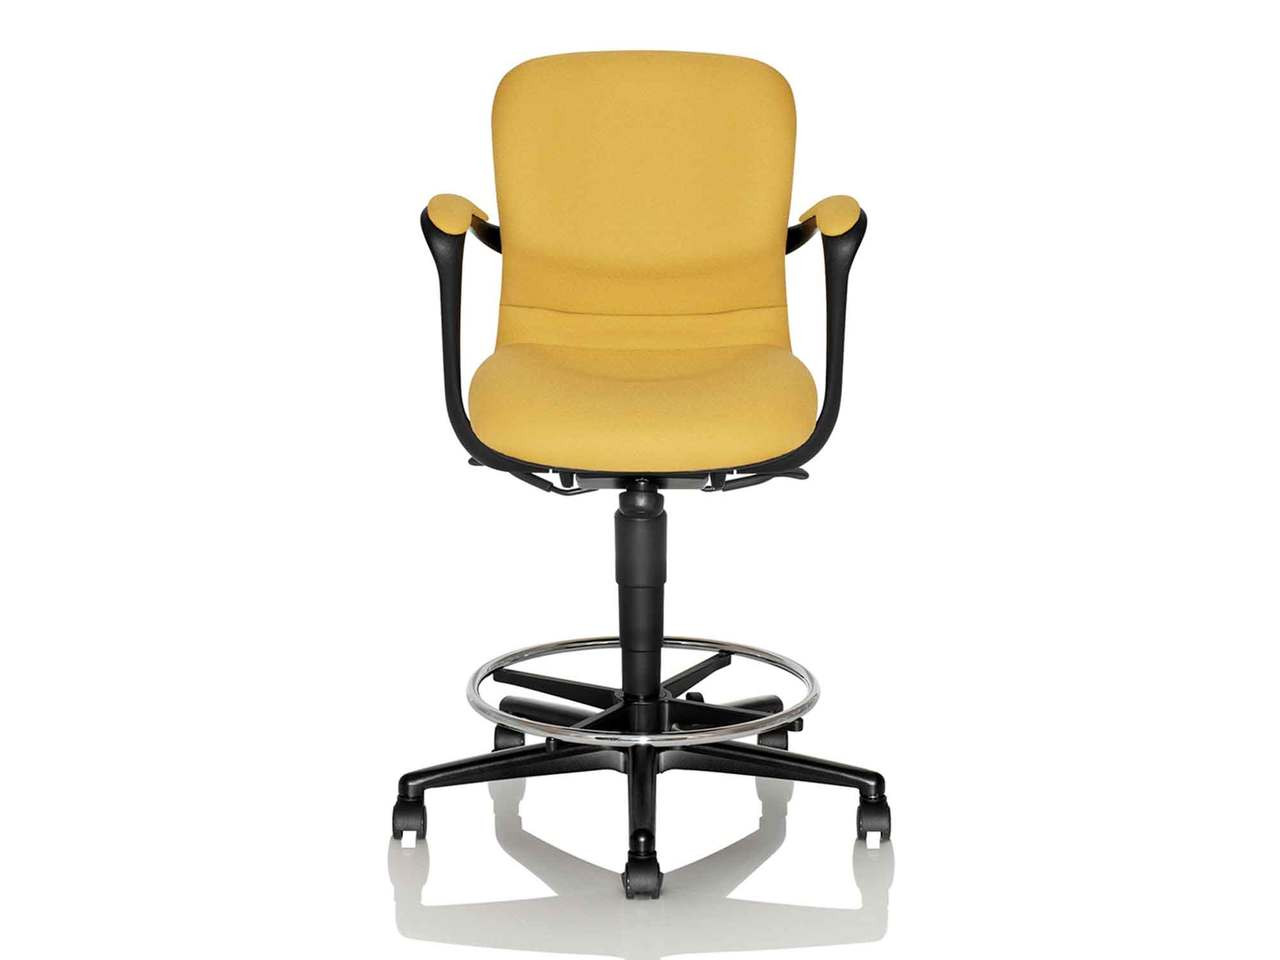 united chair medical stool bungee office with arms brylee furniture warehouse